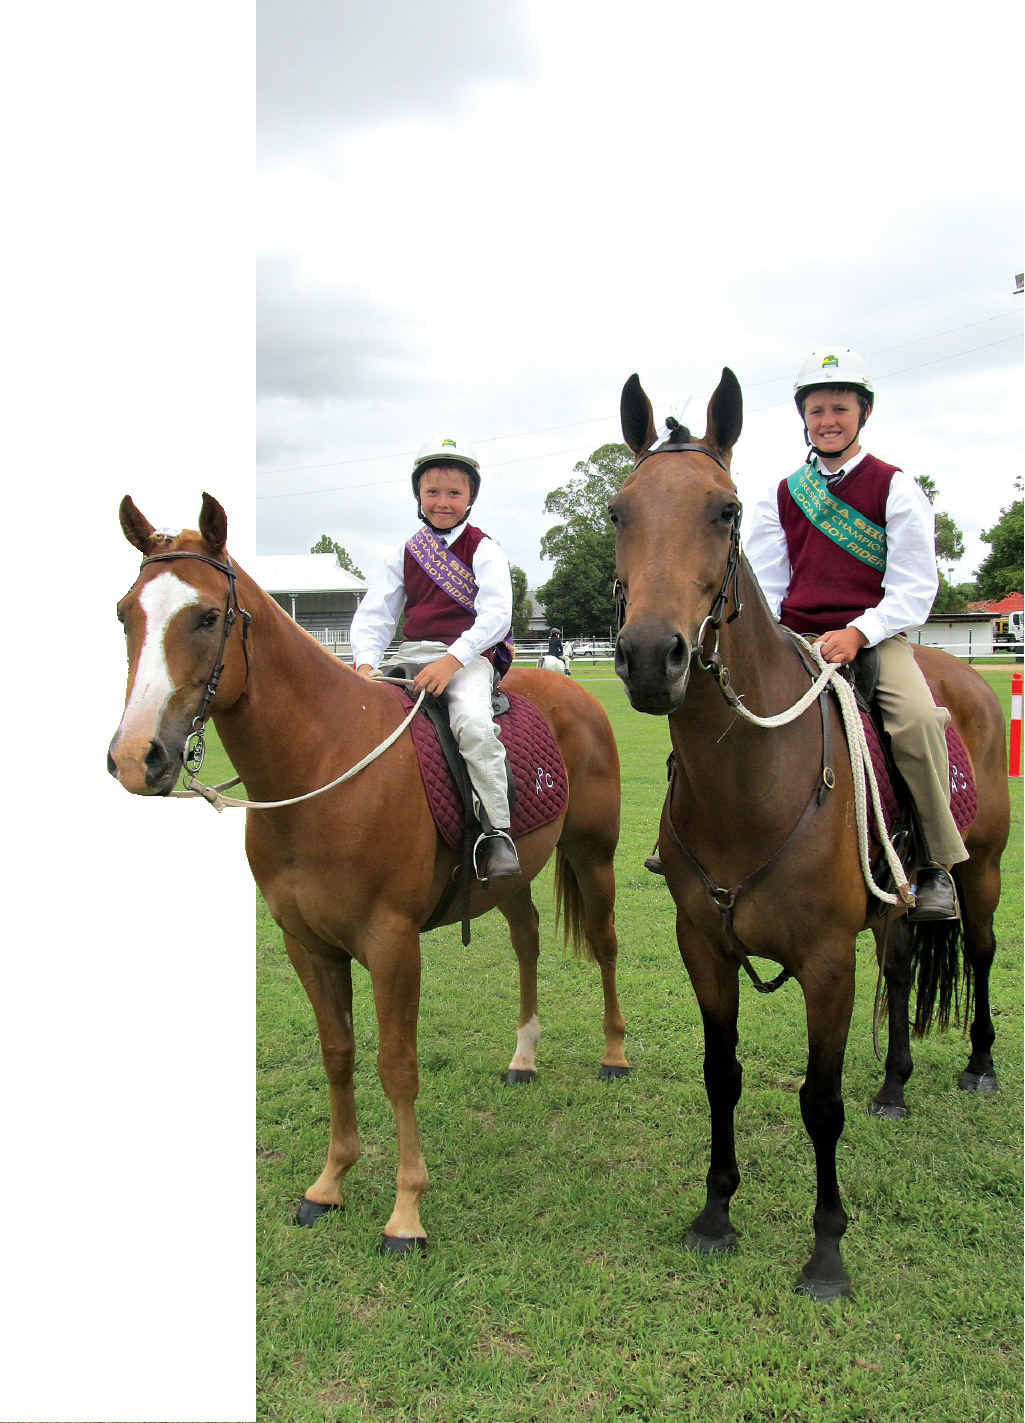 WINNING FAMILY: Champion Local Boy Rider and Reserve Champion Local Boy Rider at this year's Allora Show went to brothers Connor and Blake Feltham (respectively), of Clifton.